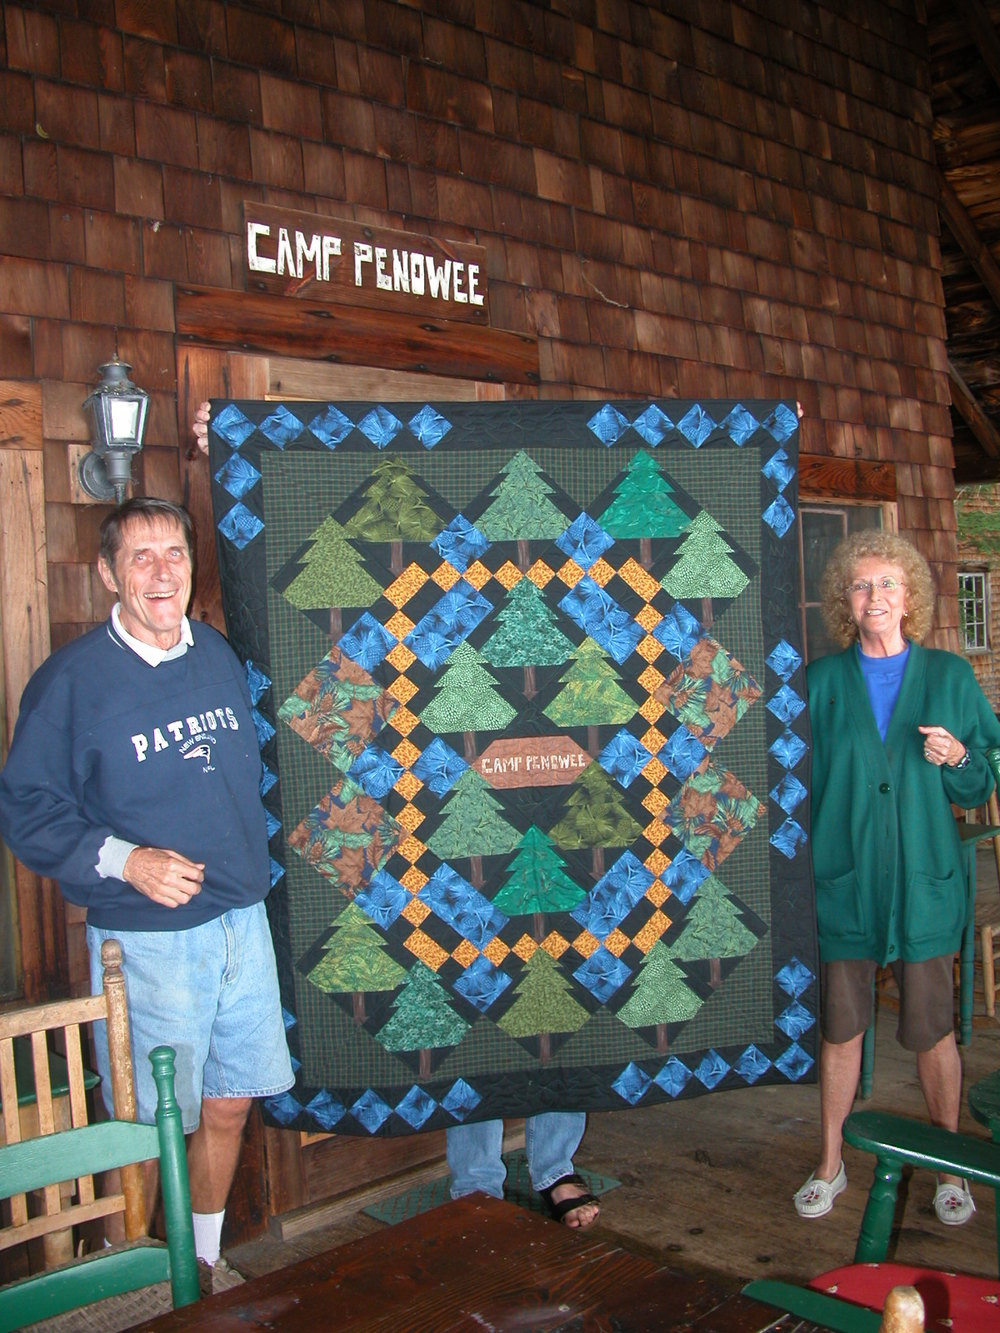 Roger and Kit with Camp Penowee quilt